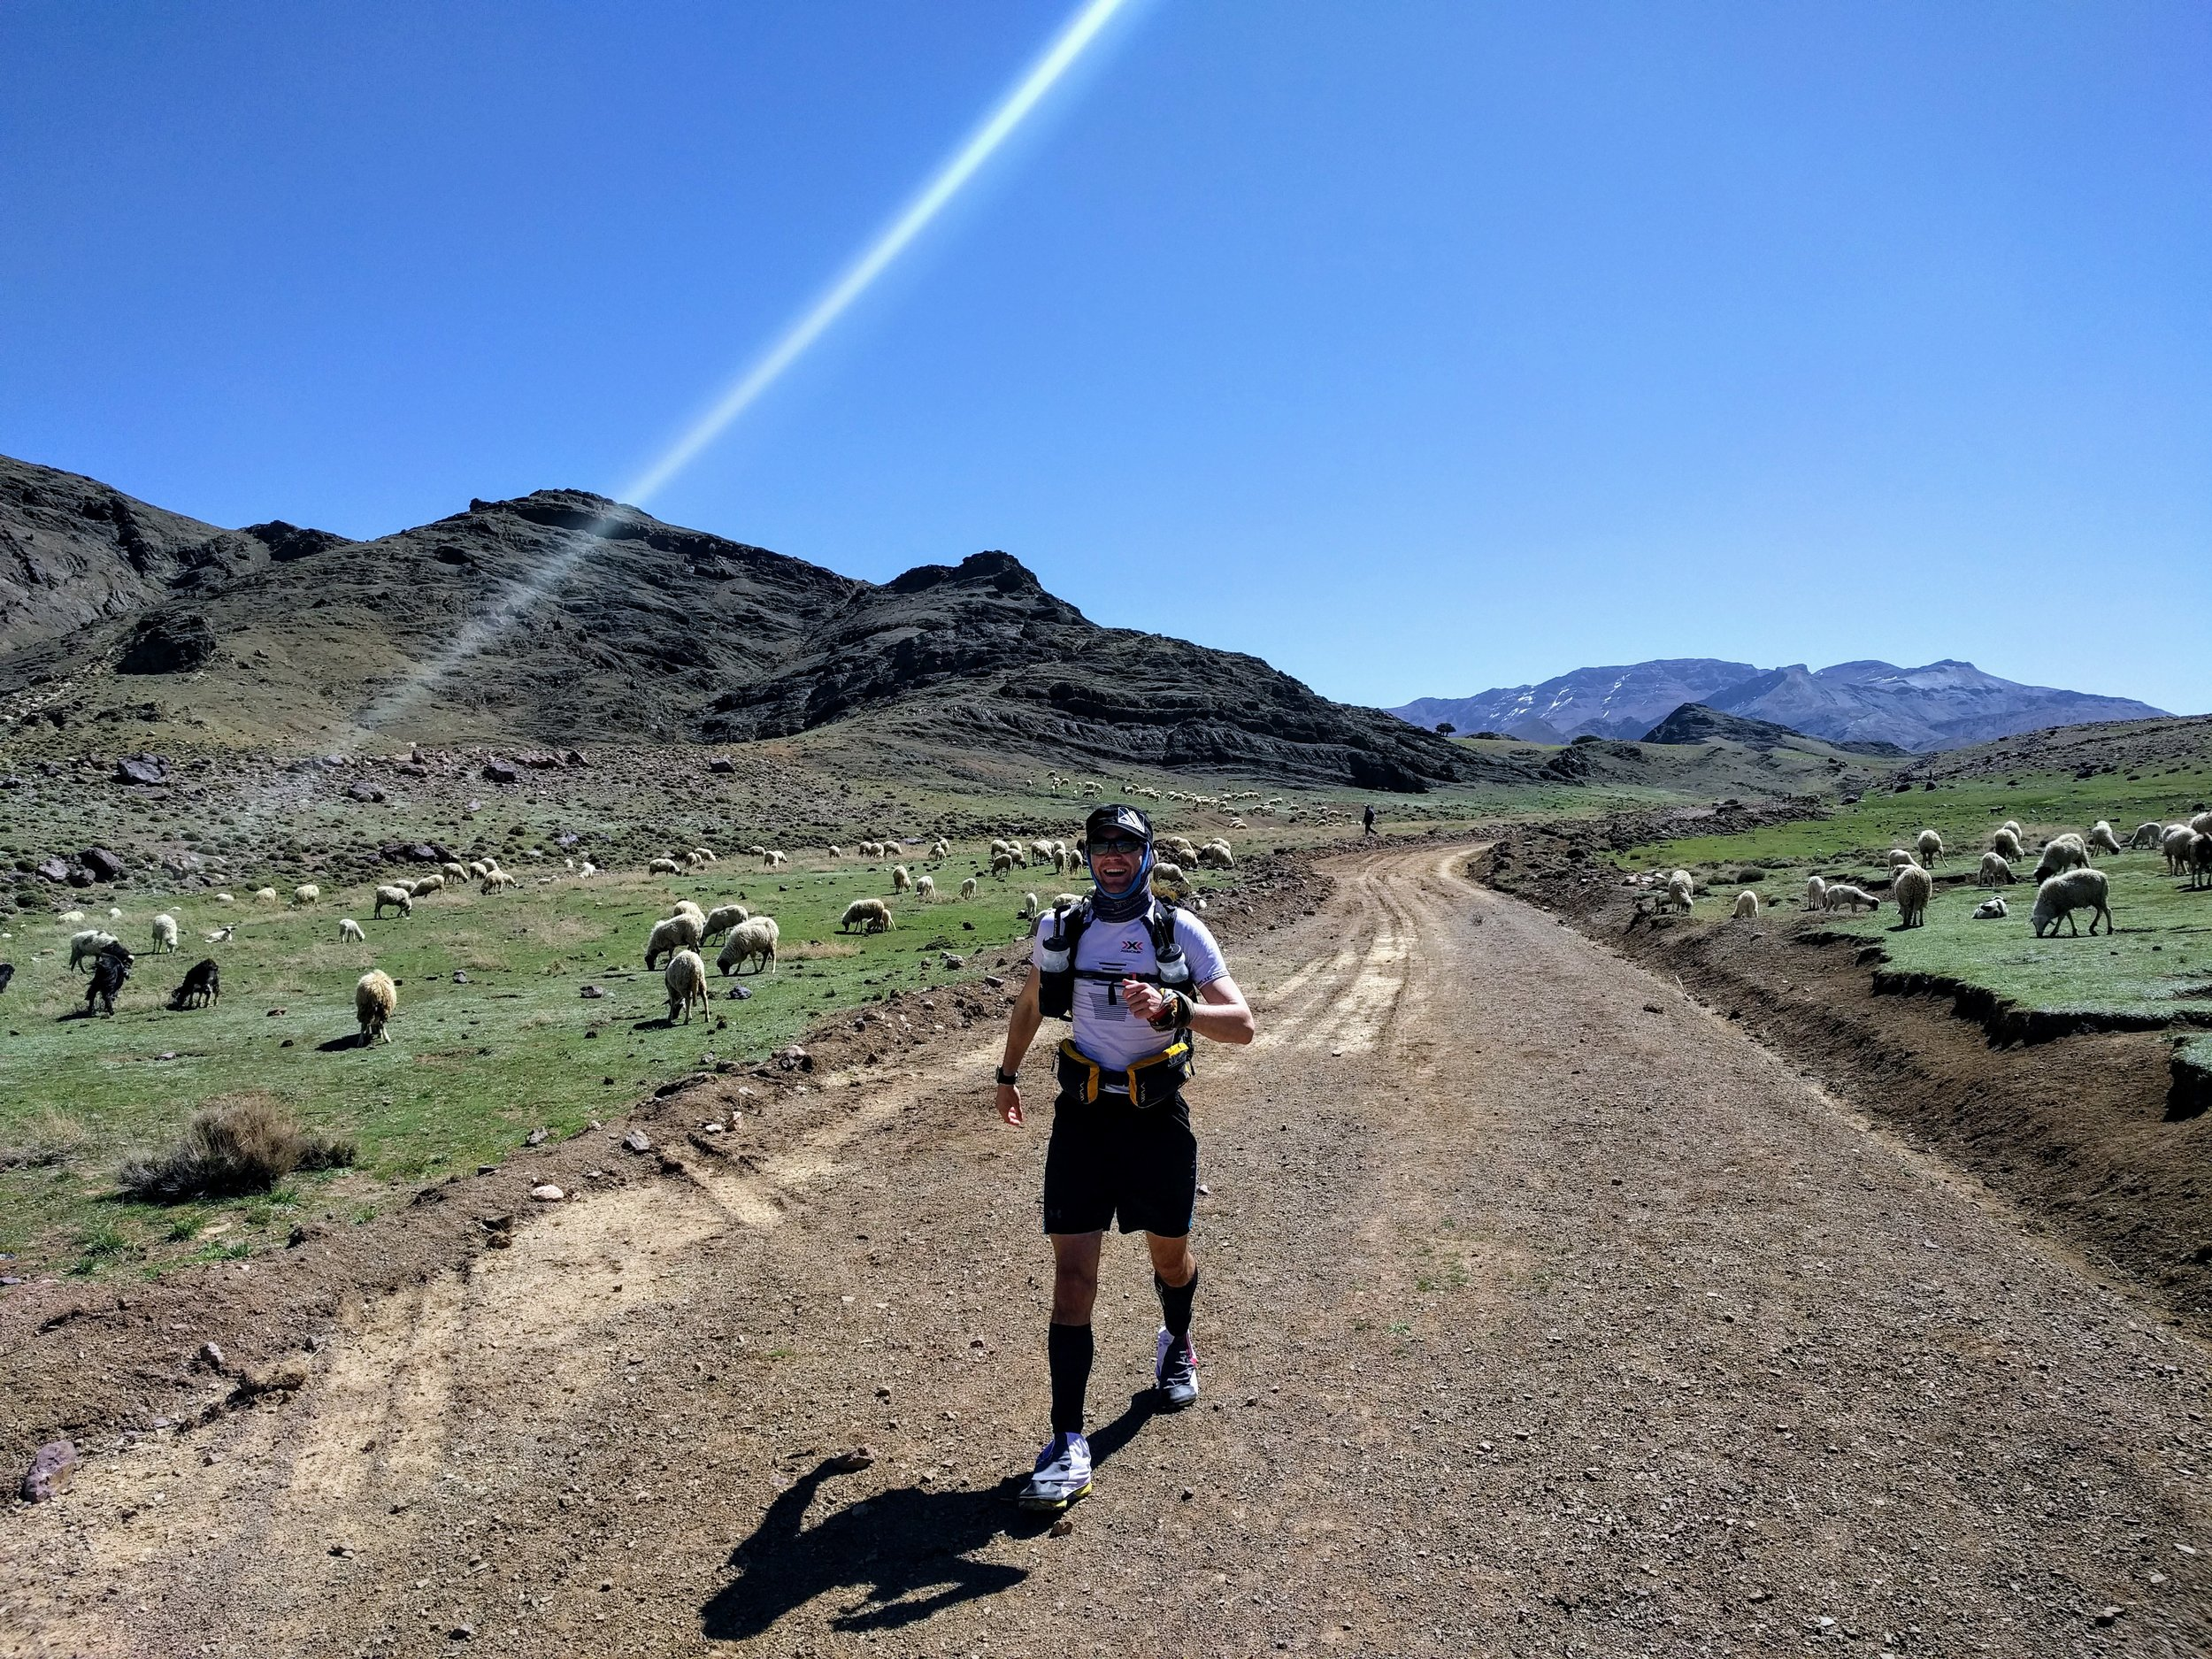 Paul Broadway navigating the sheep of the High Atlas on Day 3